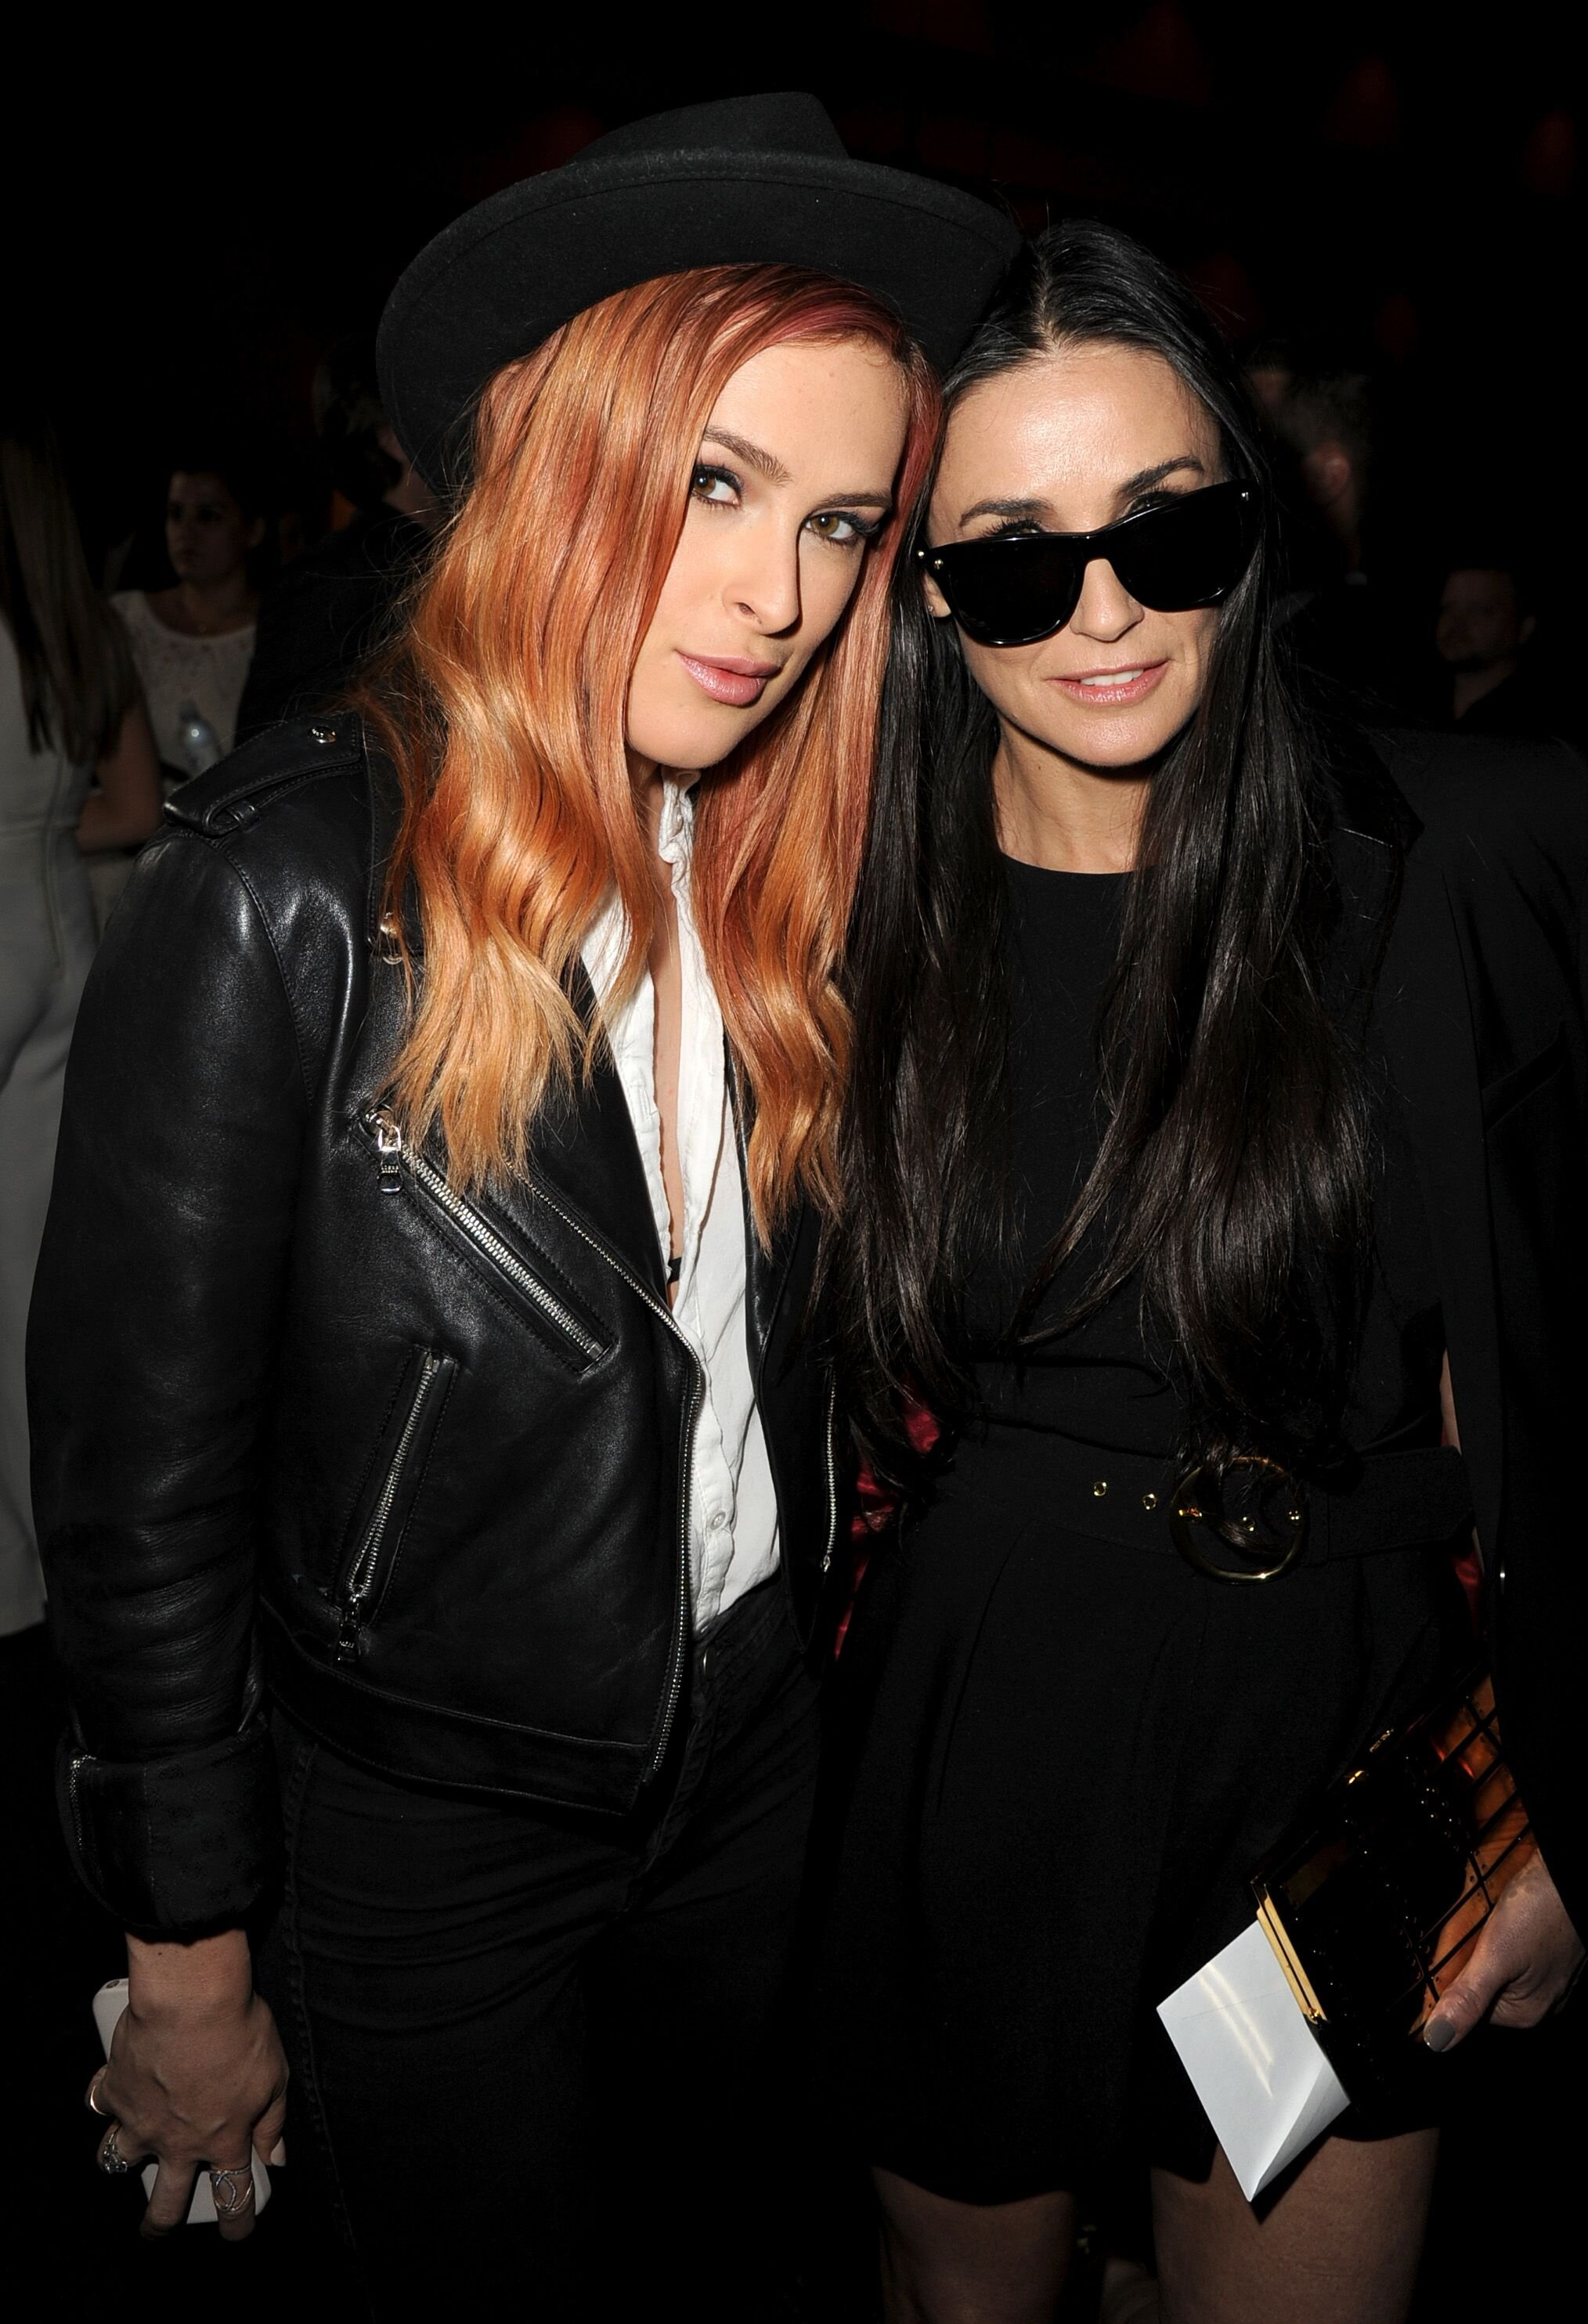 """Rumer Willis and Demi Moore at the premiere of """"Palo Alto"""" in Los Angeles in 2014"""